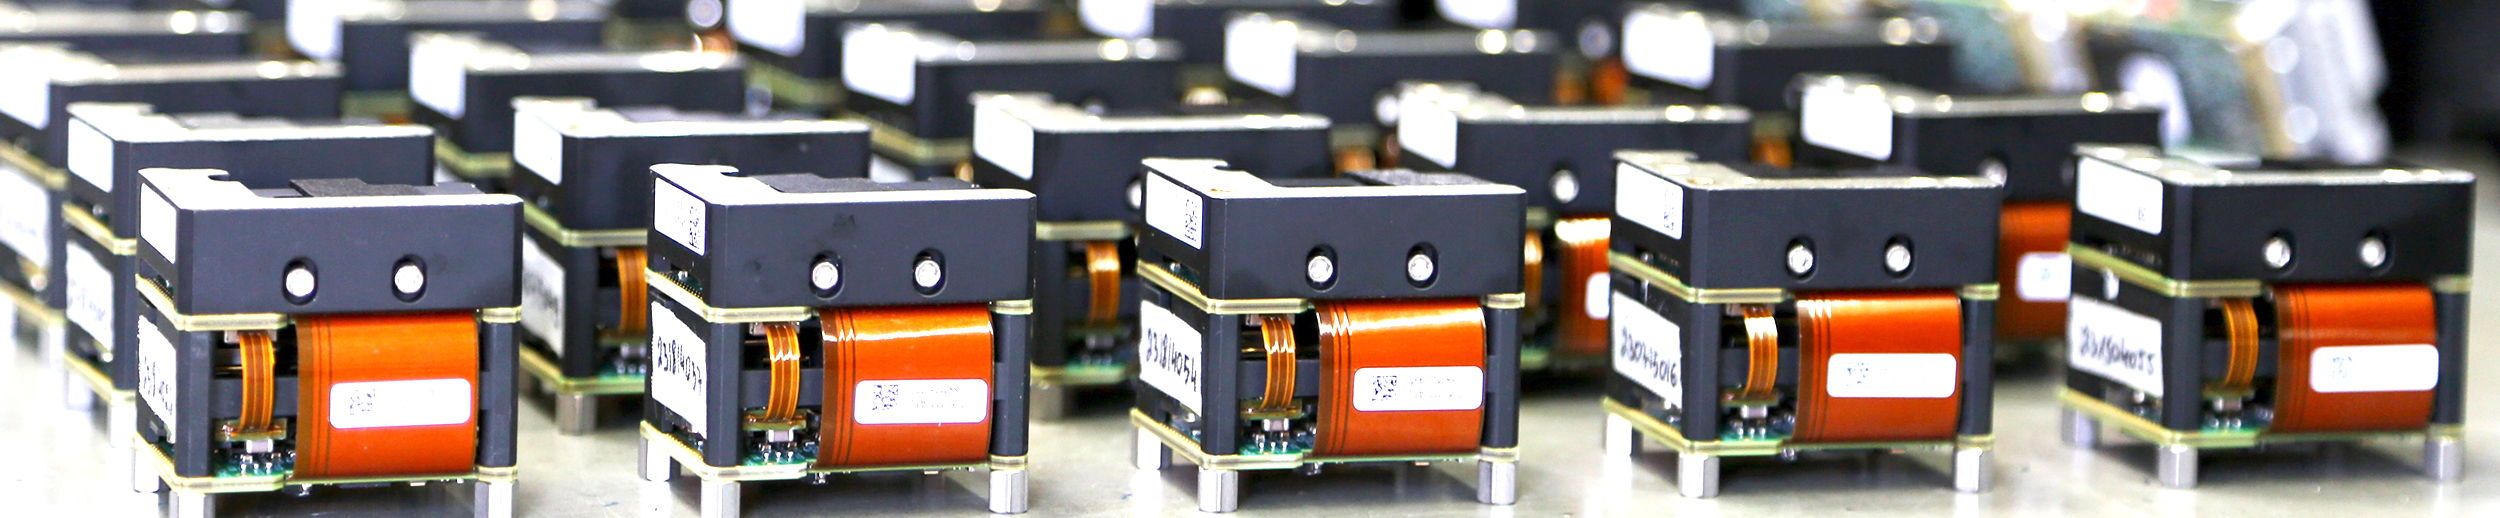 Opgal Thermal Imaging Cores